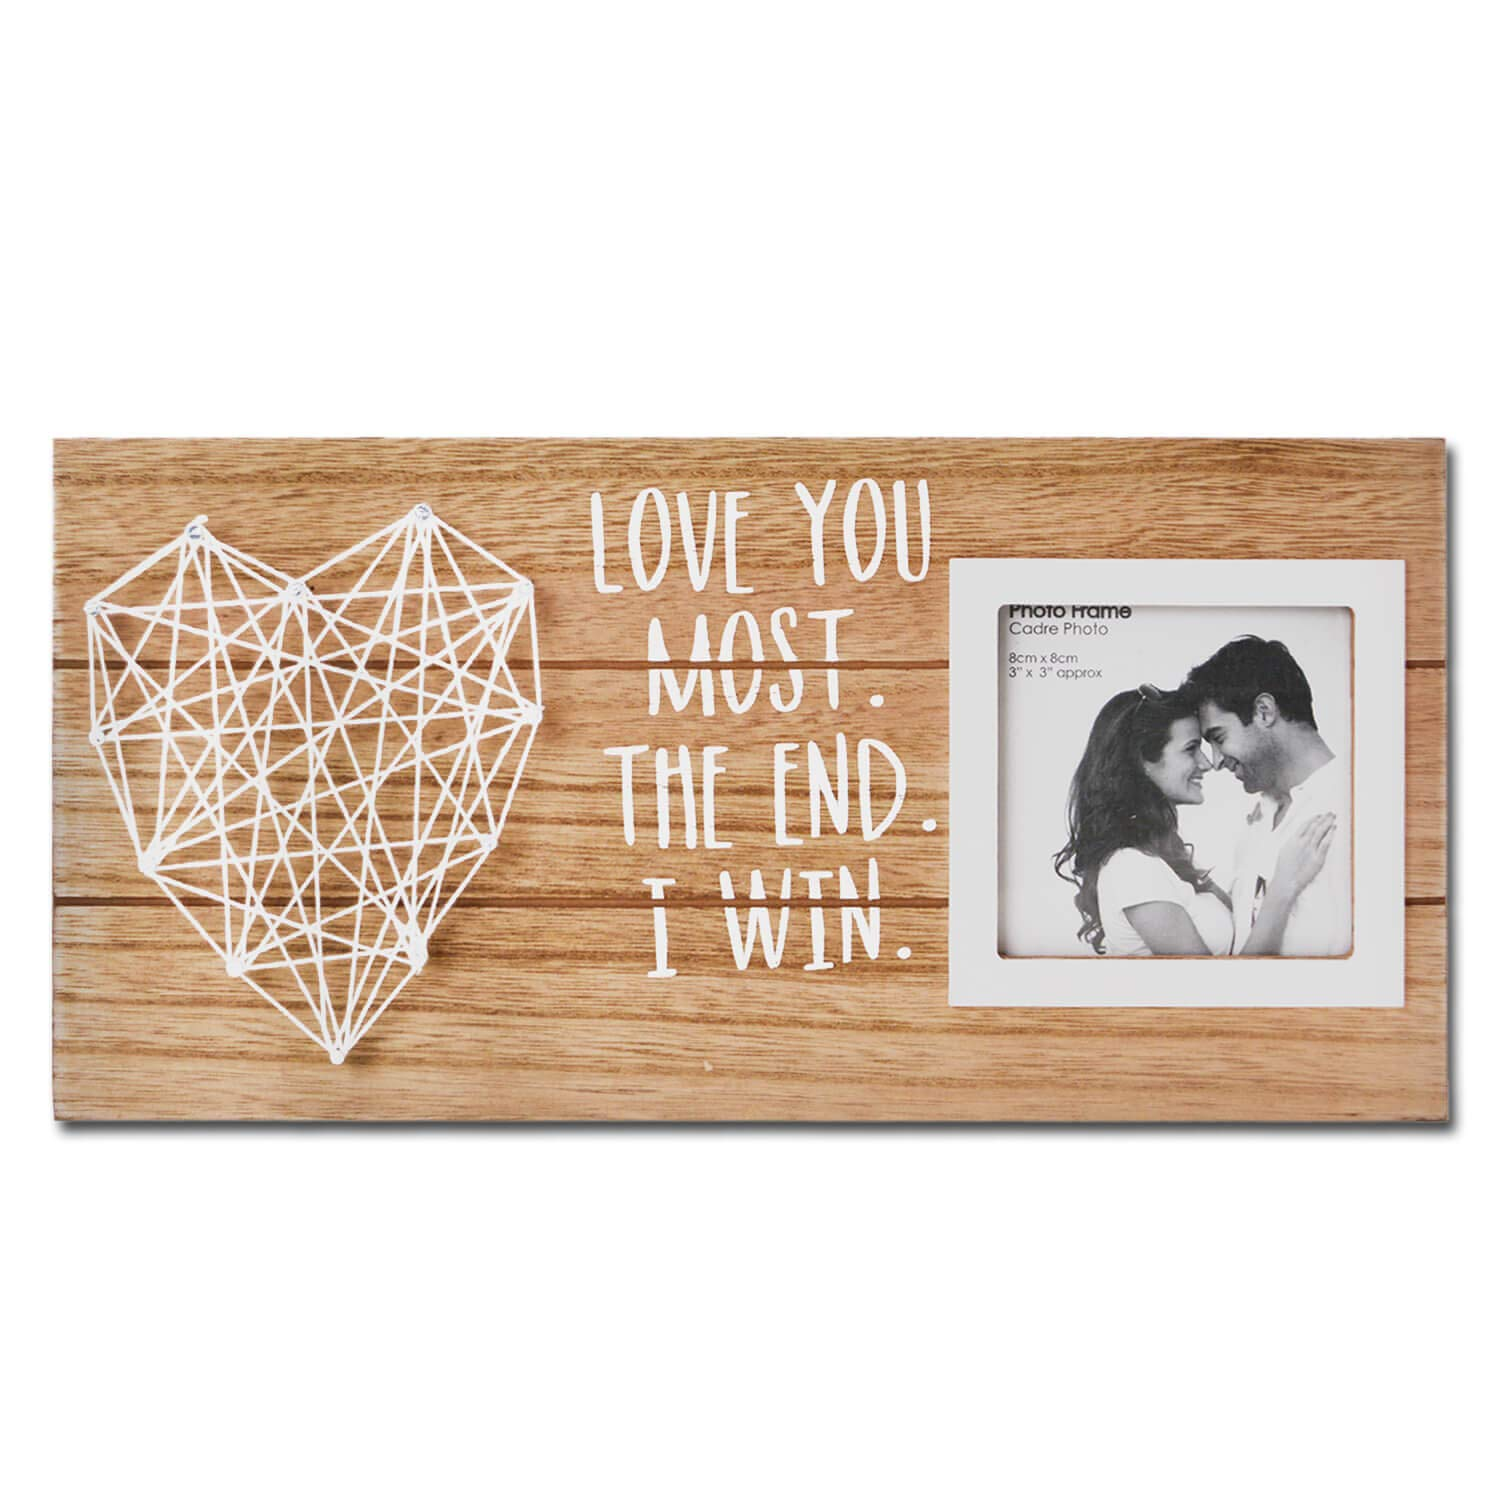 VILIGHT Boyfriend and Girlfriend Gifts Couples Picture Frame - Love You Most The End I Win Rustic Wood Plaque Sign for 3 Inches Photo by VILIGHT